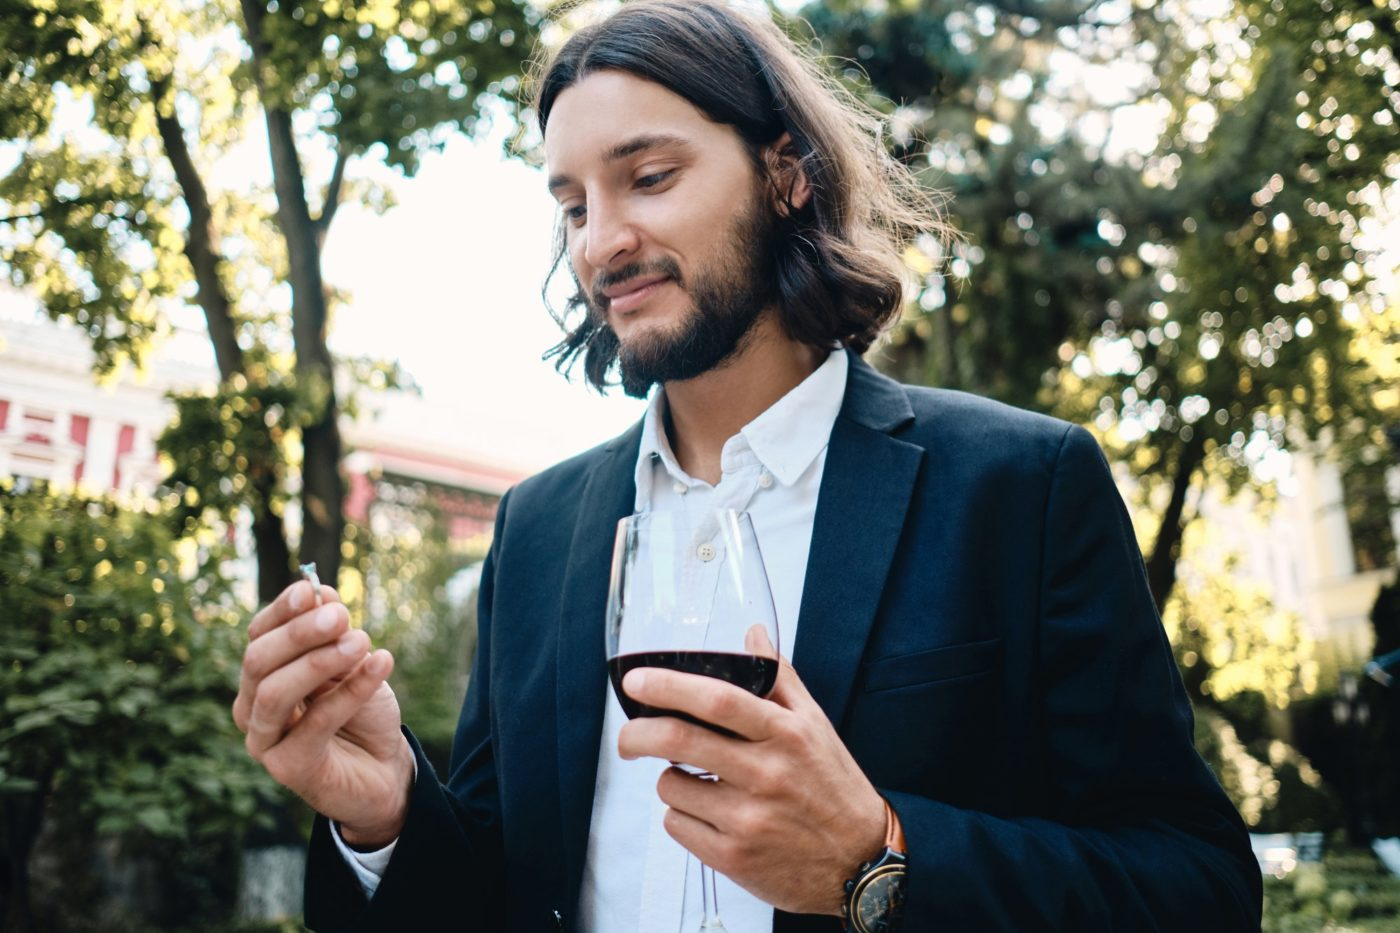 Young handsome latin man with glass of wine dreamily holding wedding ring in restaurant outdoor